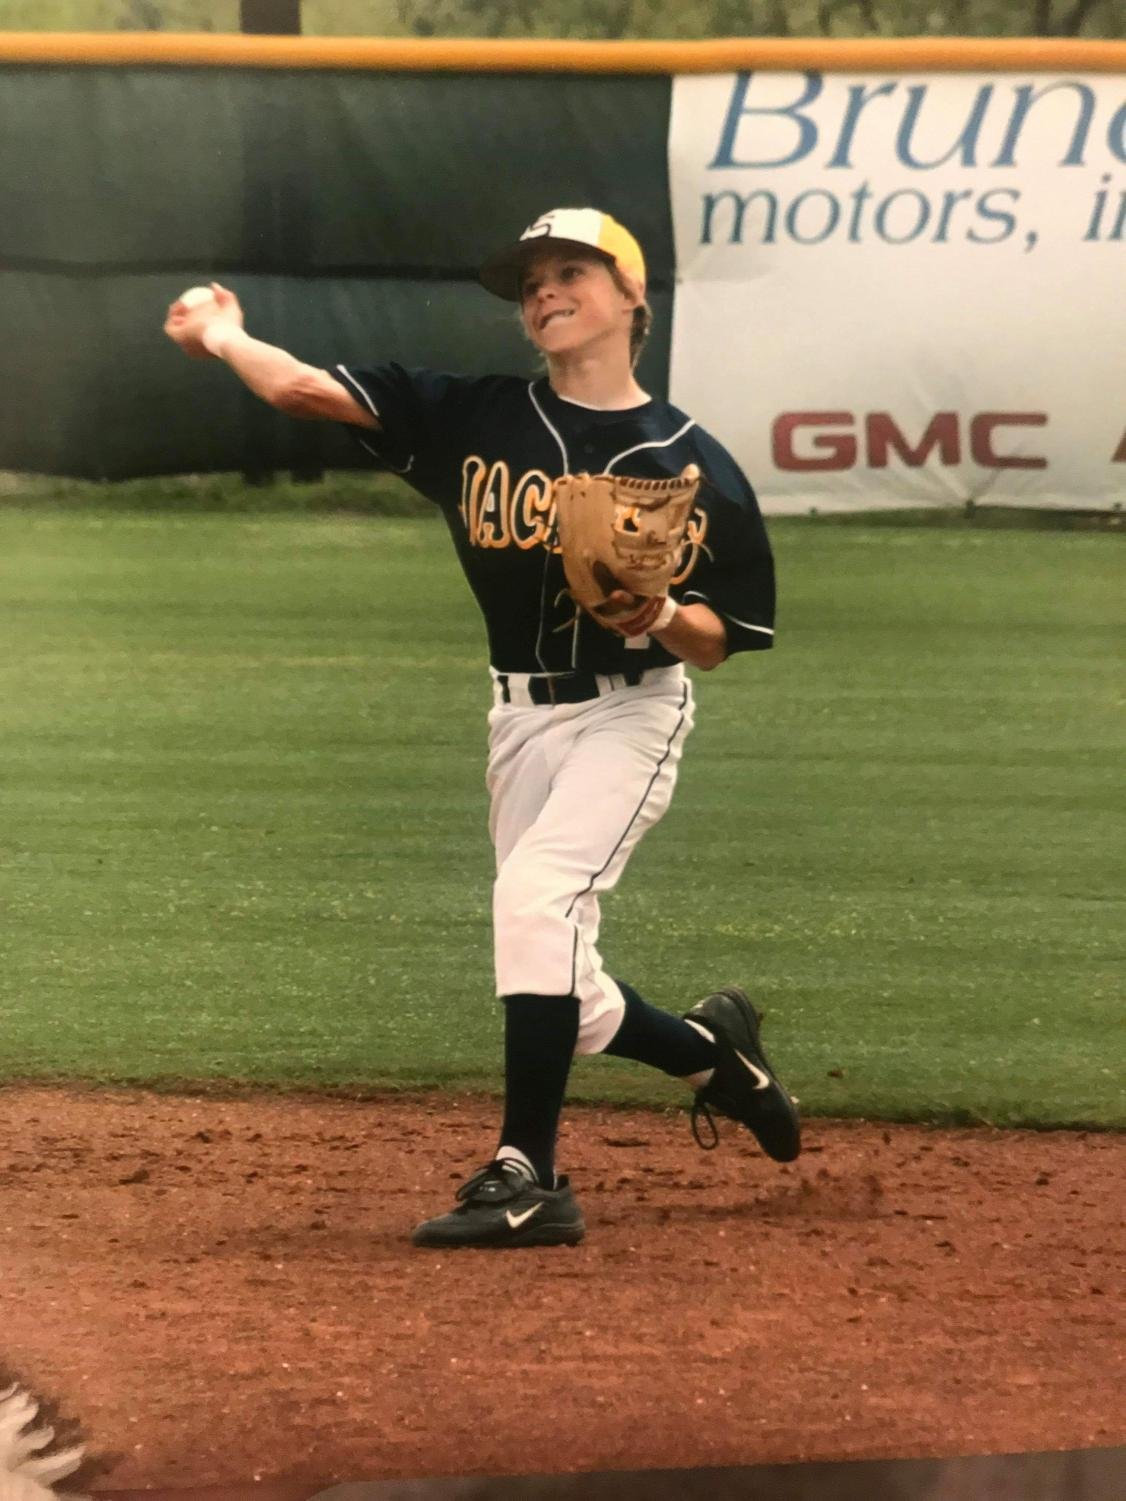 Brock Holt playing for the Stephenville Yellowjackets makes a throw across the baseball diamond while playing the infield.